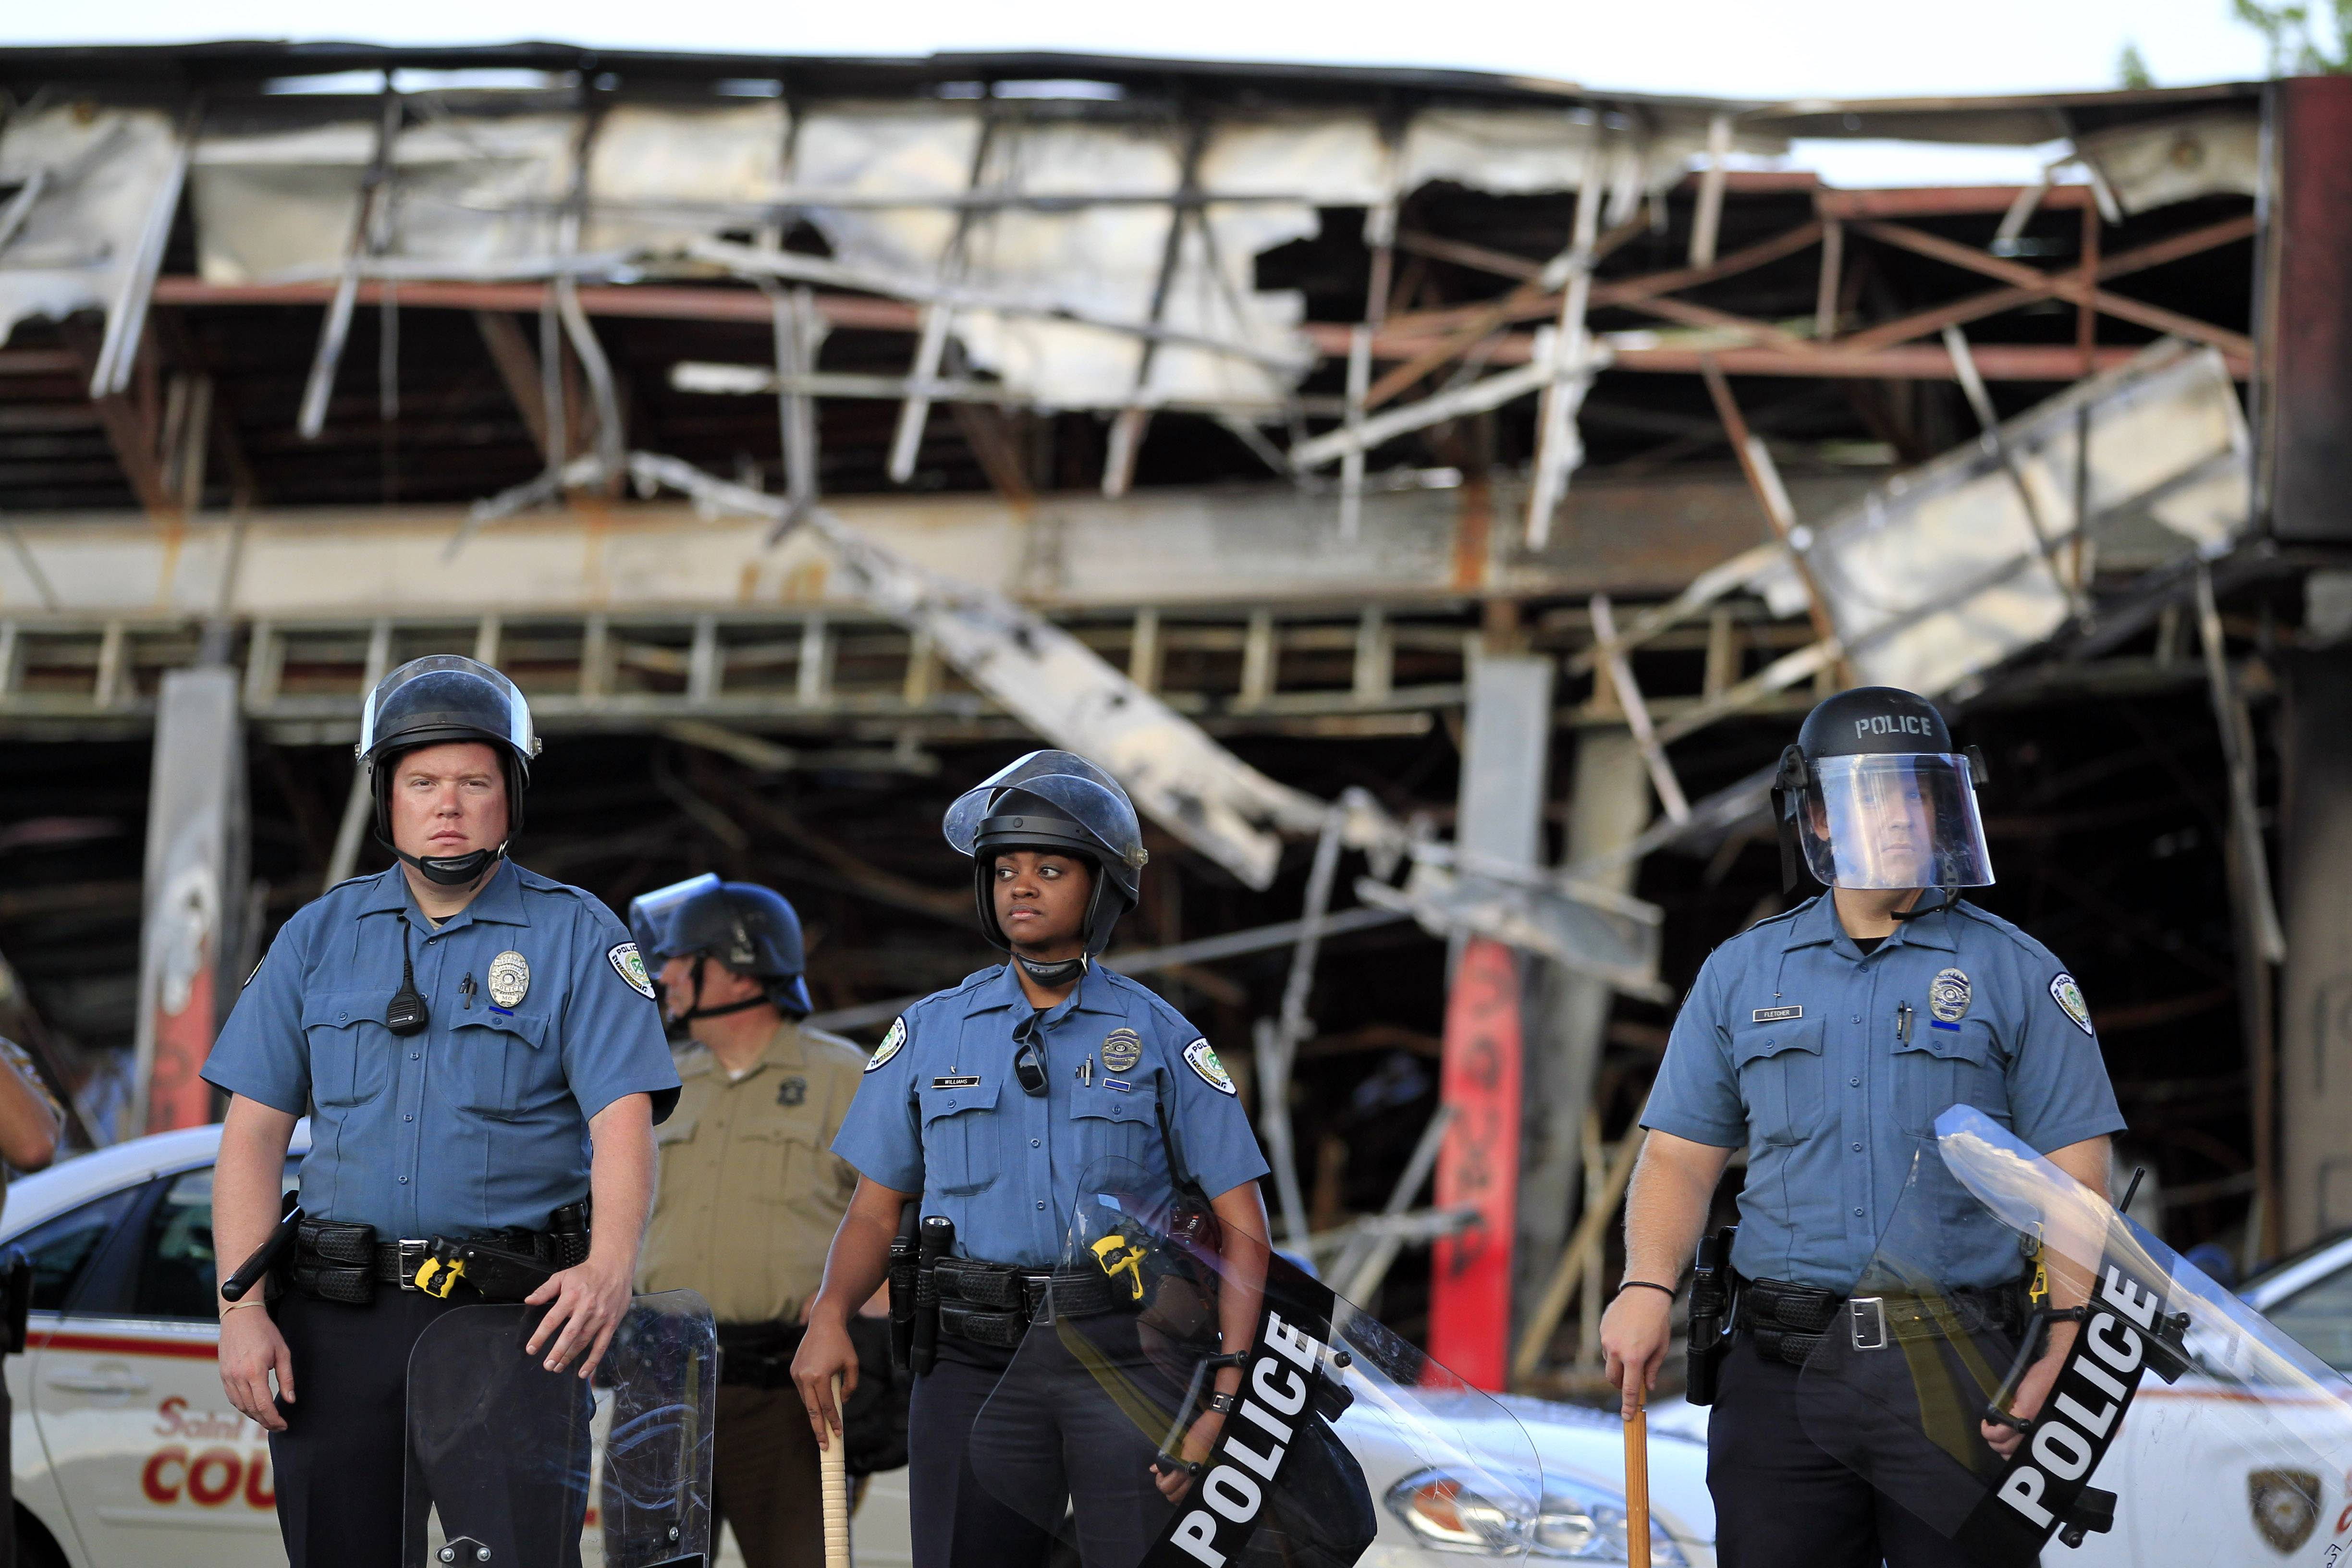 Police wearing riot gear stage outside the remains of a burned out convenience store Monday in Ferguson, Mo. Authorities in Ferguson used tear gas and rubber bullets to try to disperse a large crowd Monday night that had gathered at the site of a burned-out convenience store damaged a night earlier, when many businesses in the area were looted.